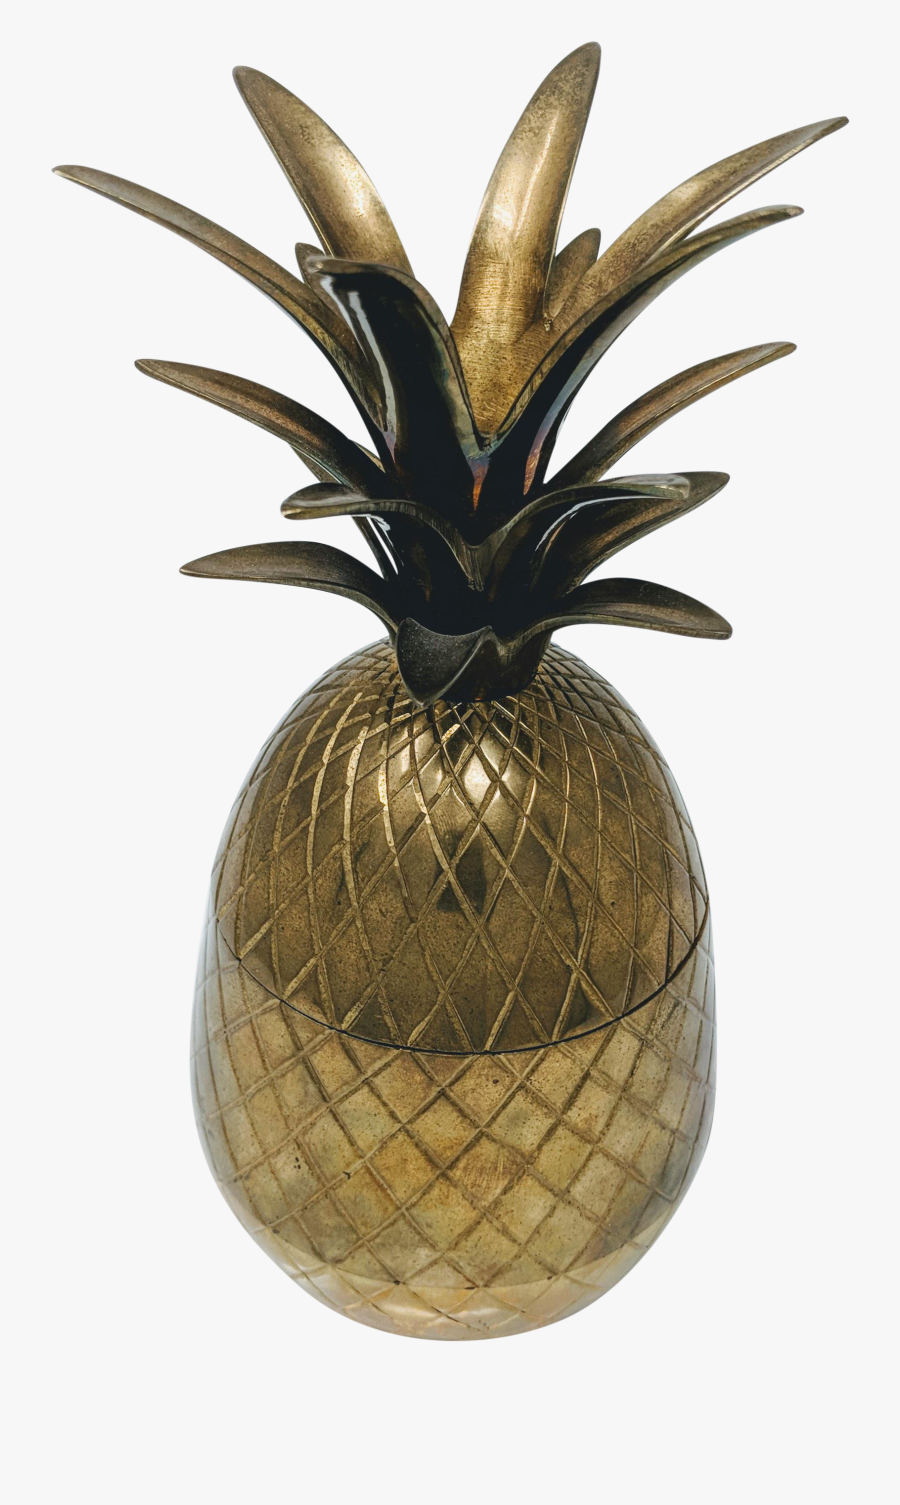 Pineapple, Transparent Clipart